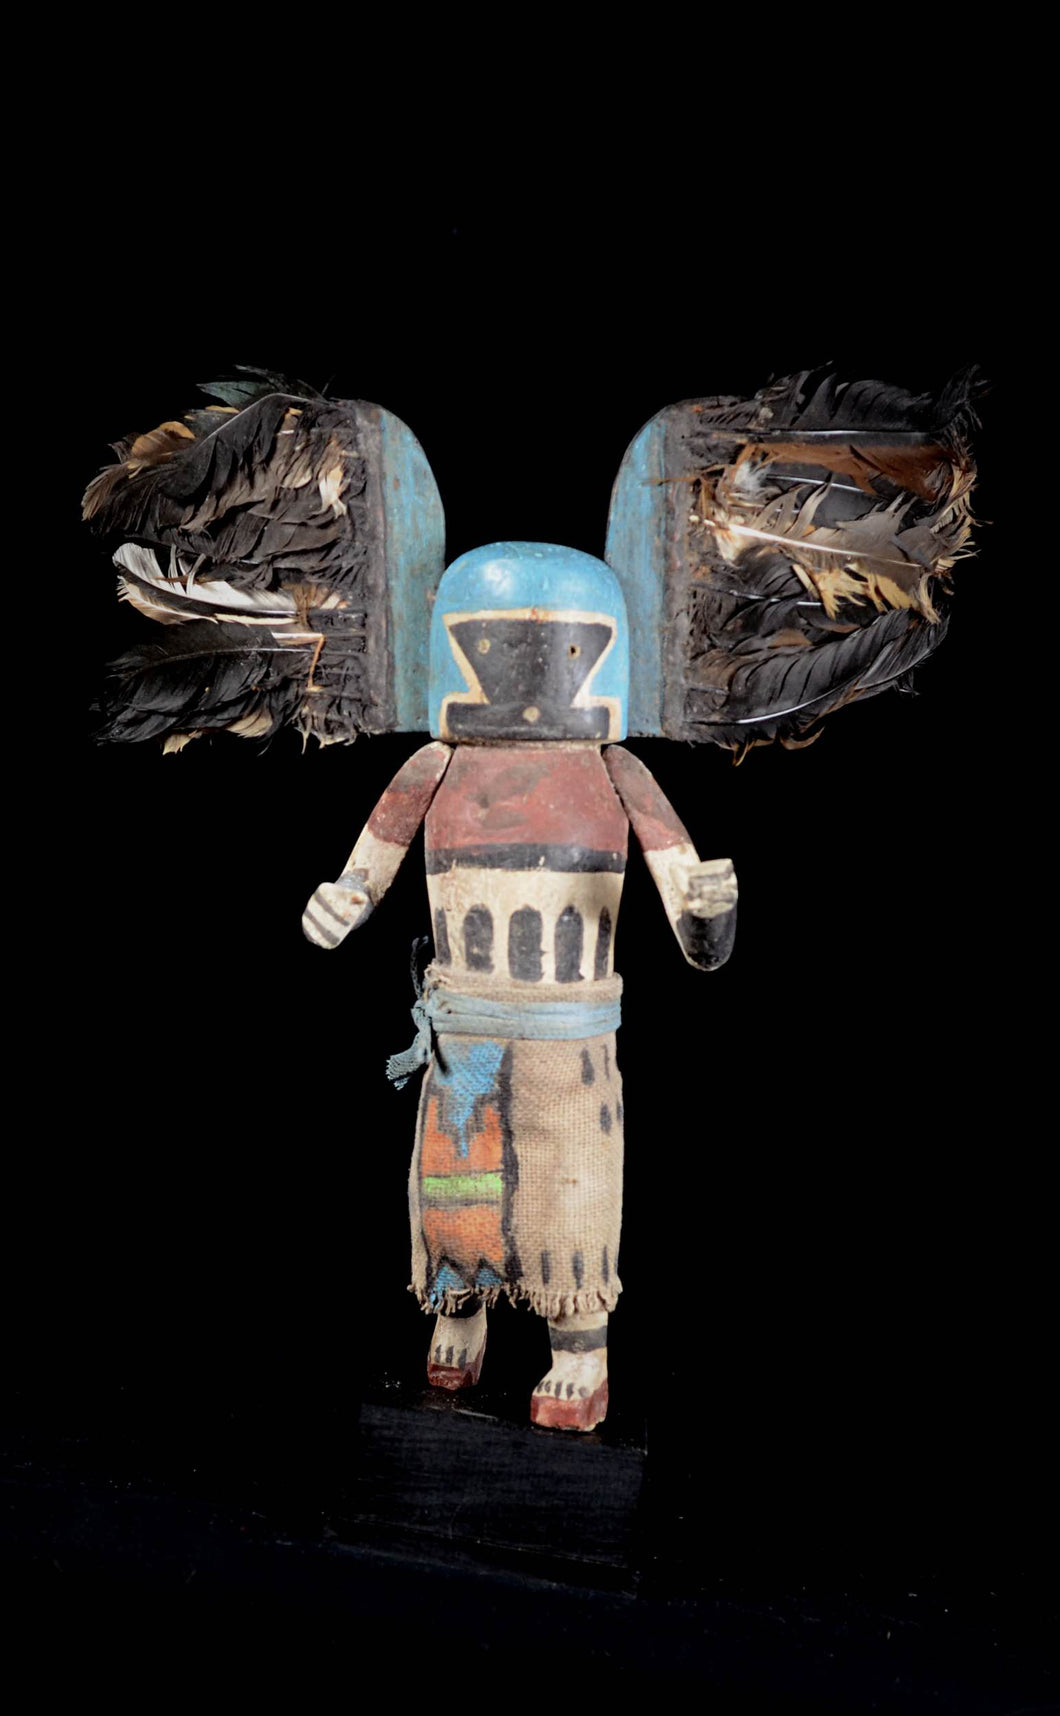 KACHINA Doll from the HOPI Indians - Amerindians - USA